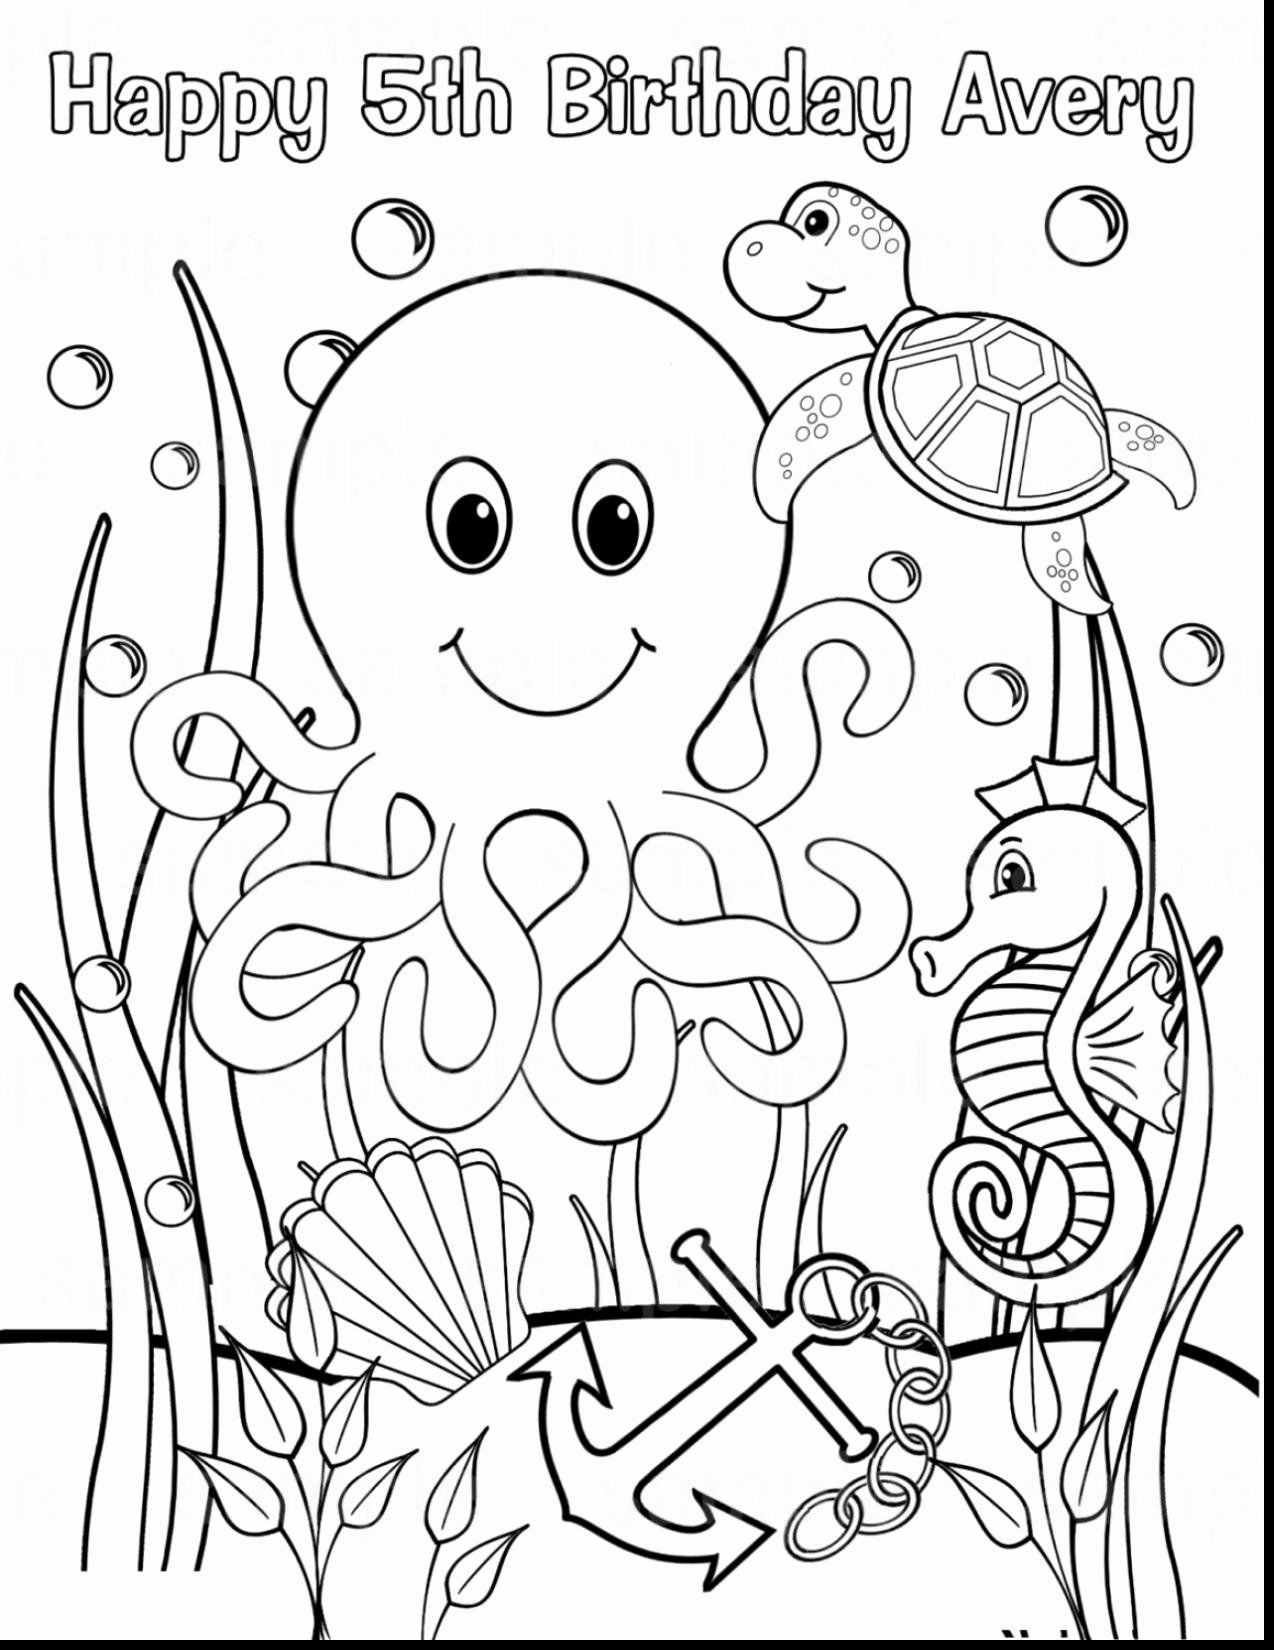 Realistic Animals Coloring Pages Unique Pages Coloring Sea Animals Coloring Pages For Kids Un In 2020 Ocean Coloring Pages Animal Coloring Pages Monster Coloring Pages